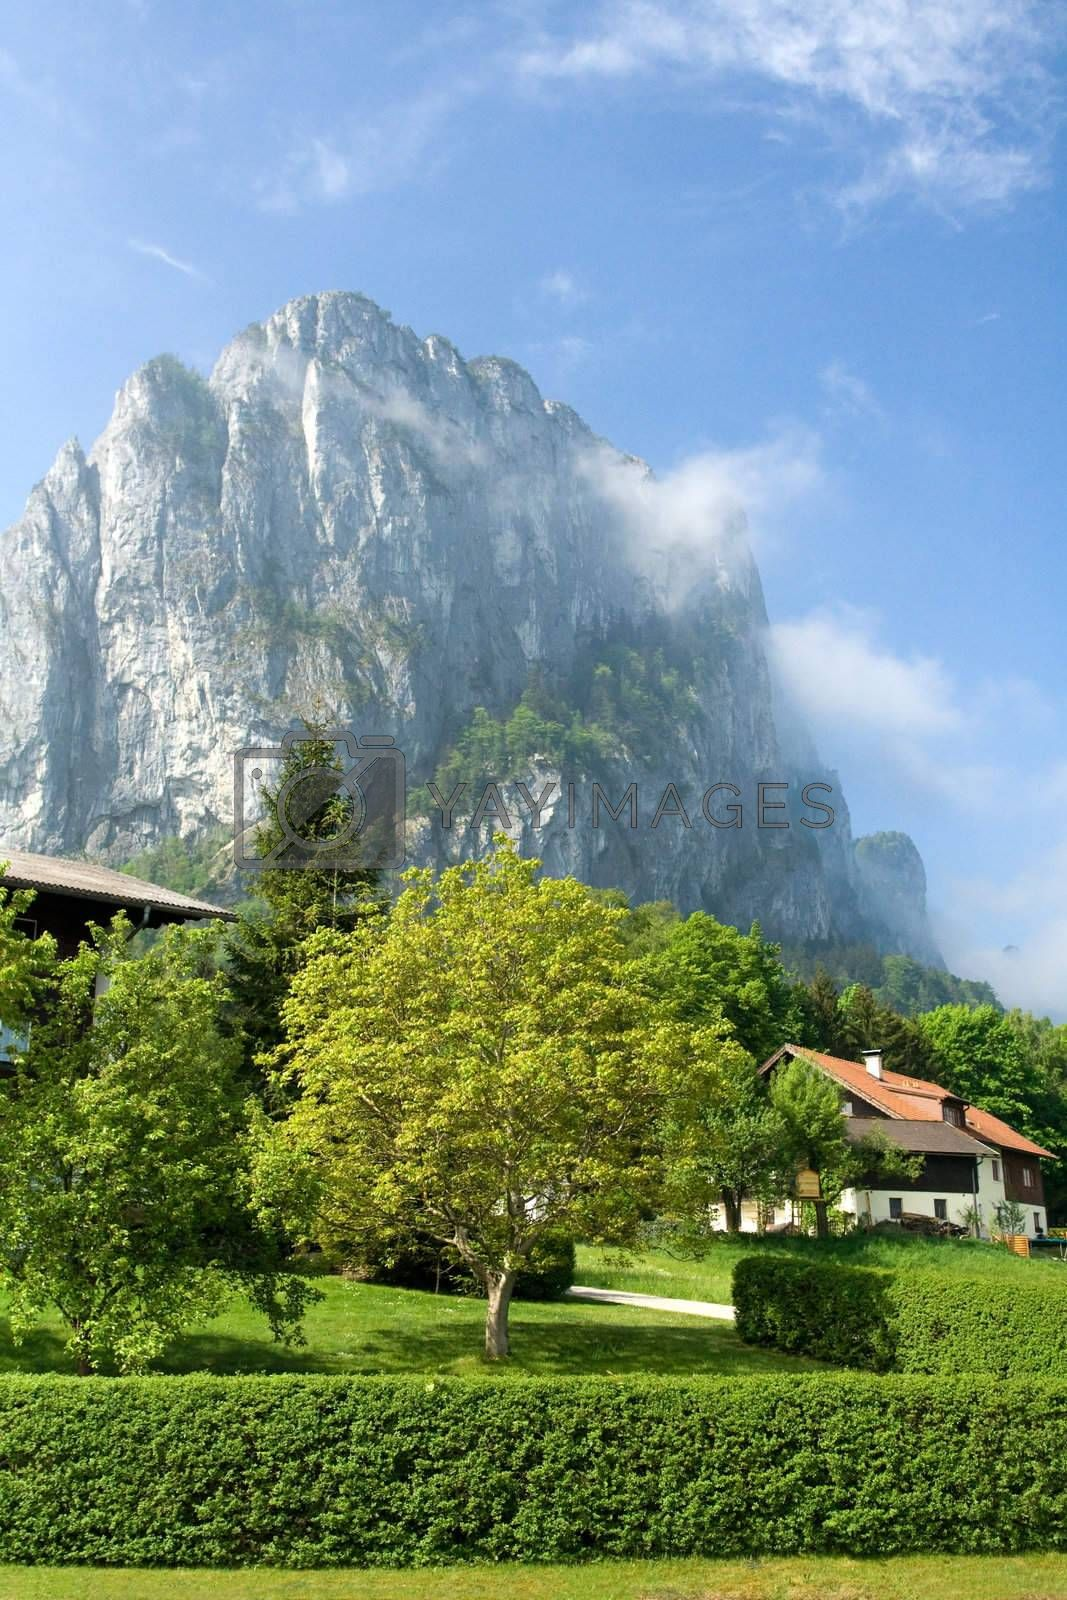 Tranquil spring countryside at the foot of foggy rock on the blue sky background